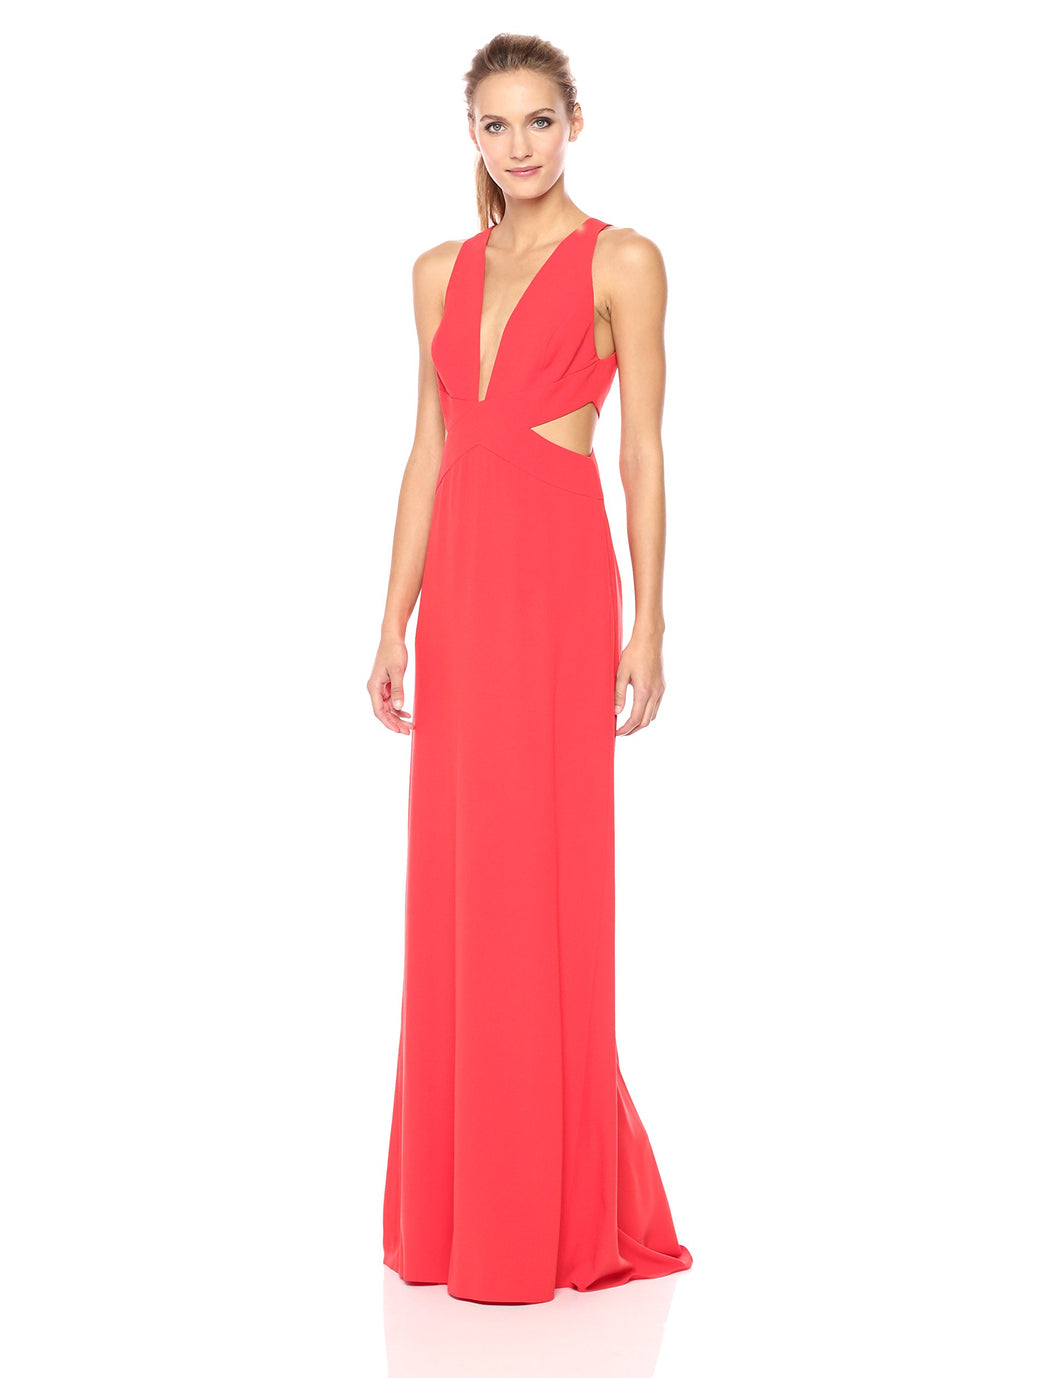 Halston Heritage Women's Sleeveless Deep V Neck Gown with Side Cut Outs, Lipstick, 4